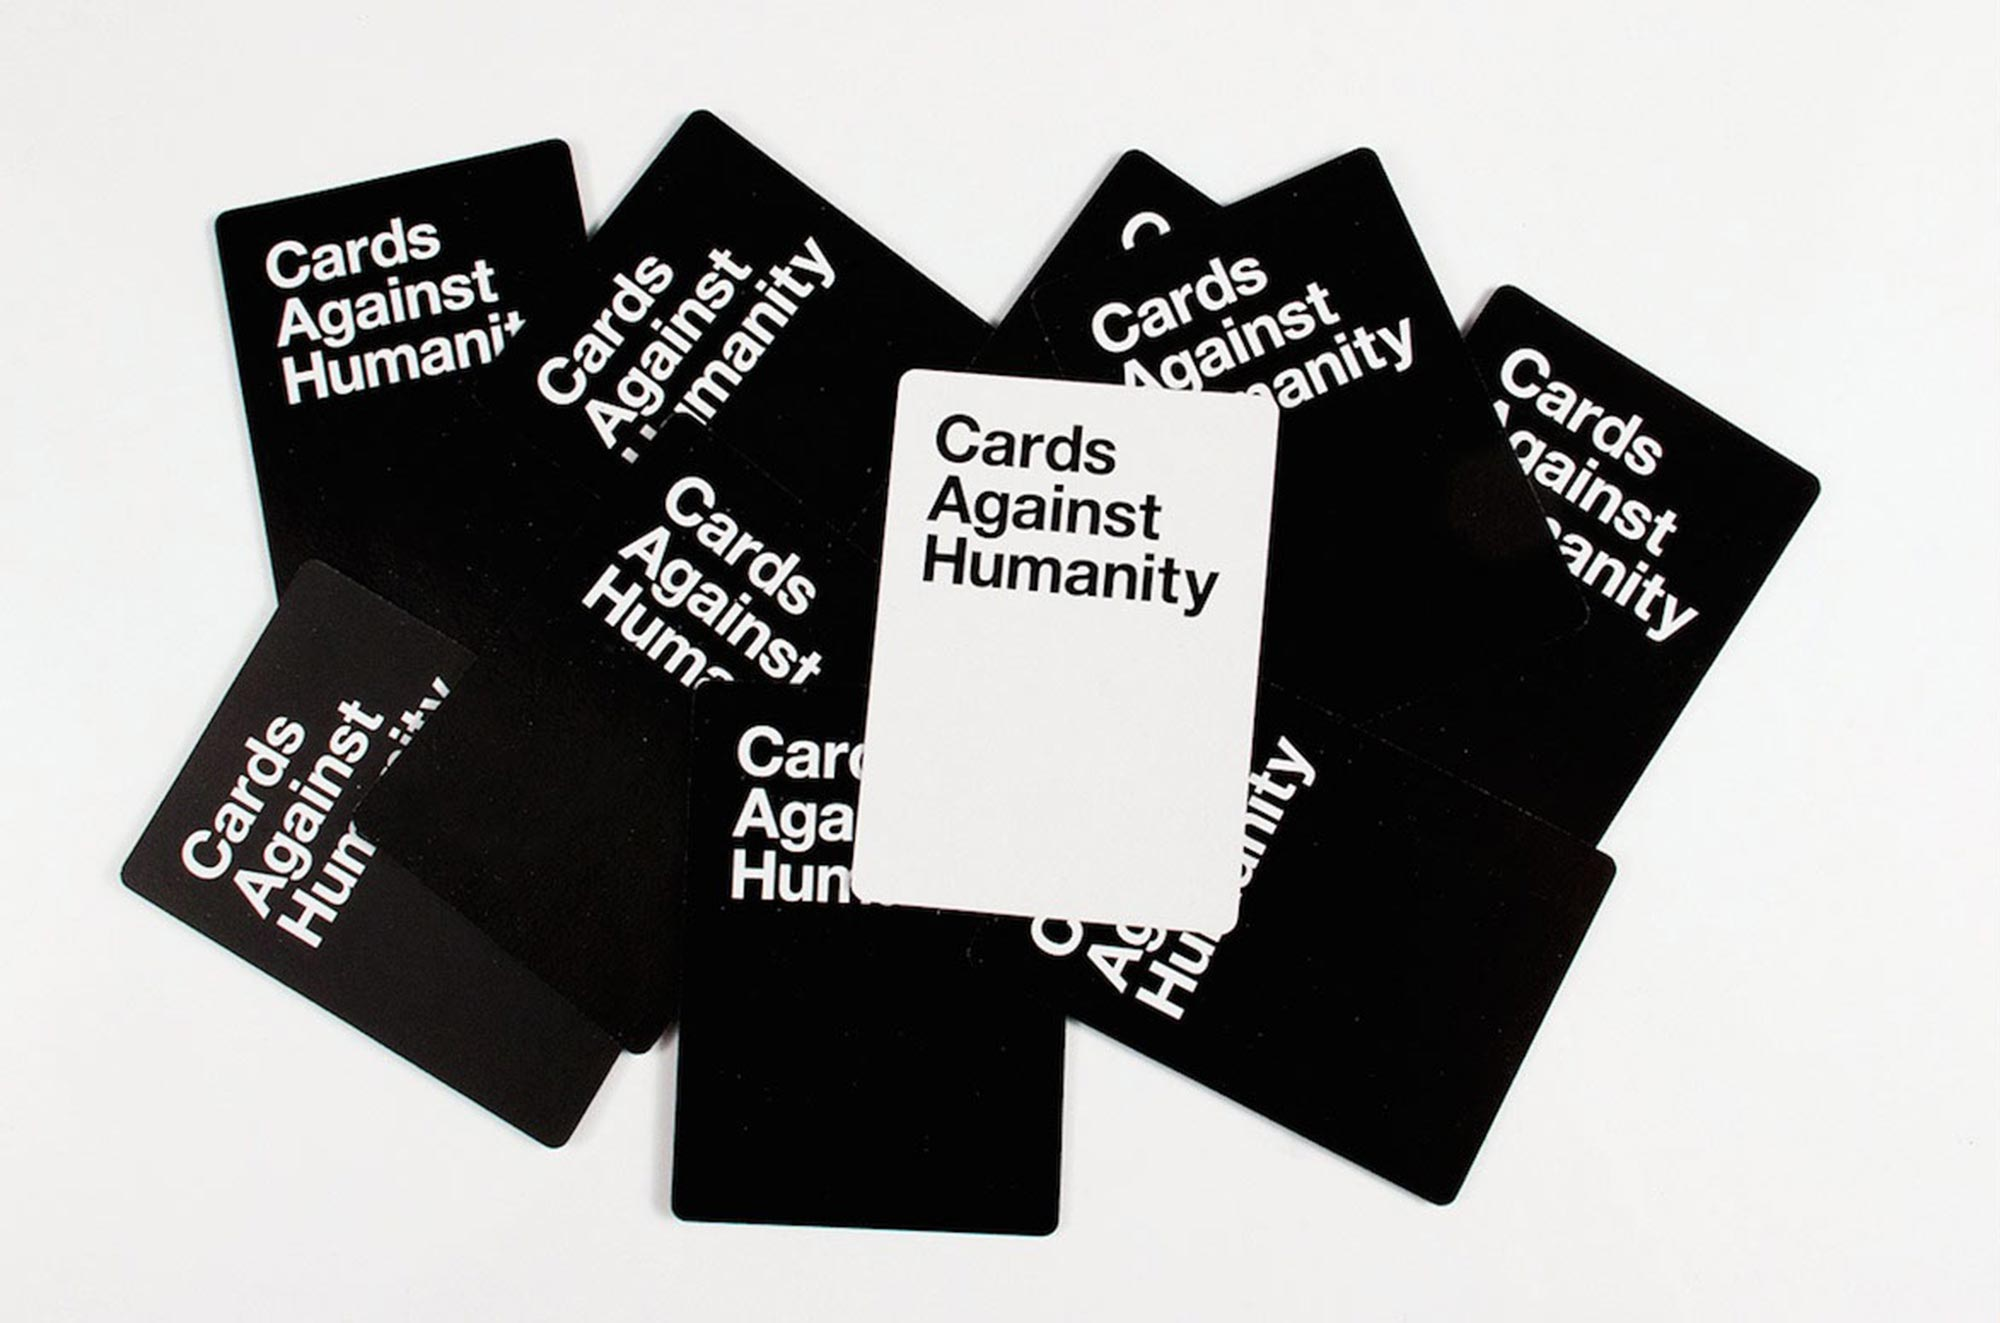 cards against humanitycredit: Brent Knepper